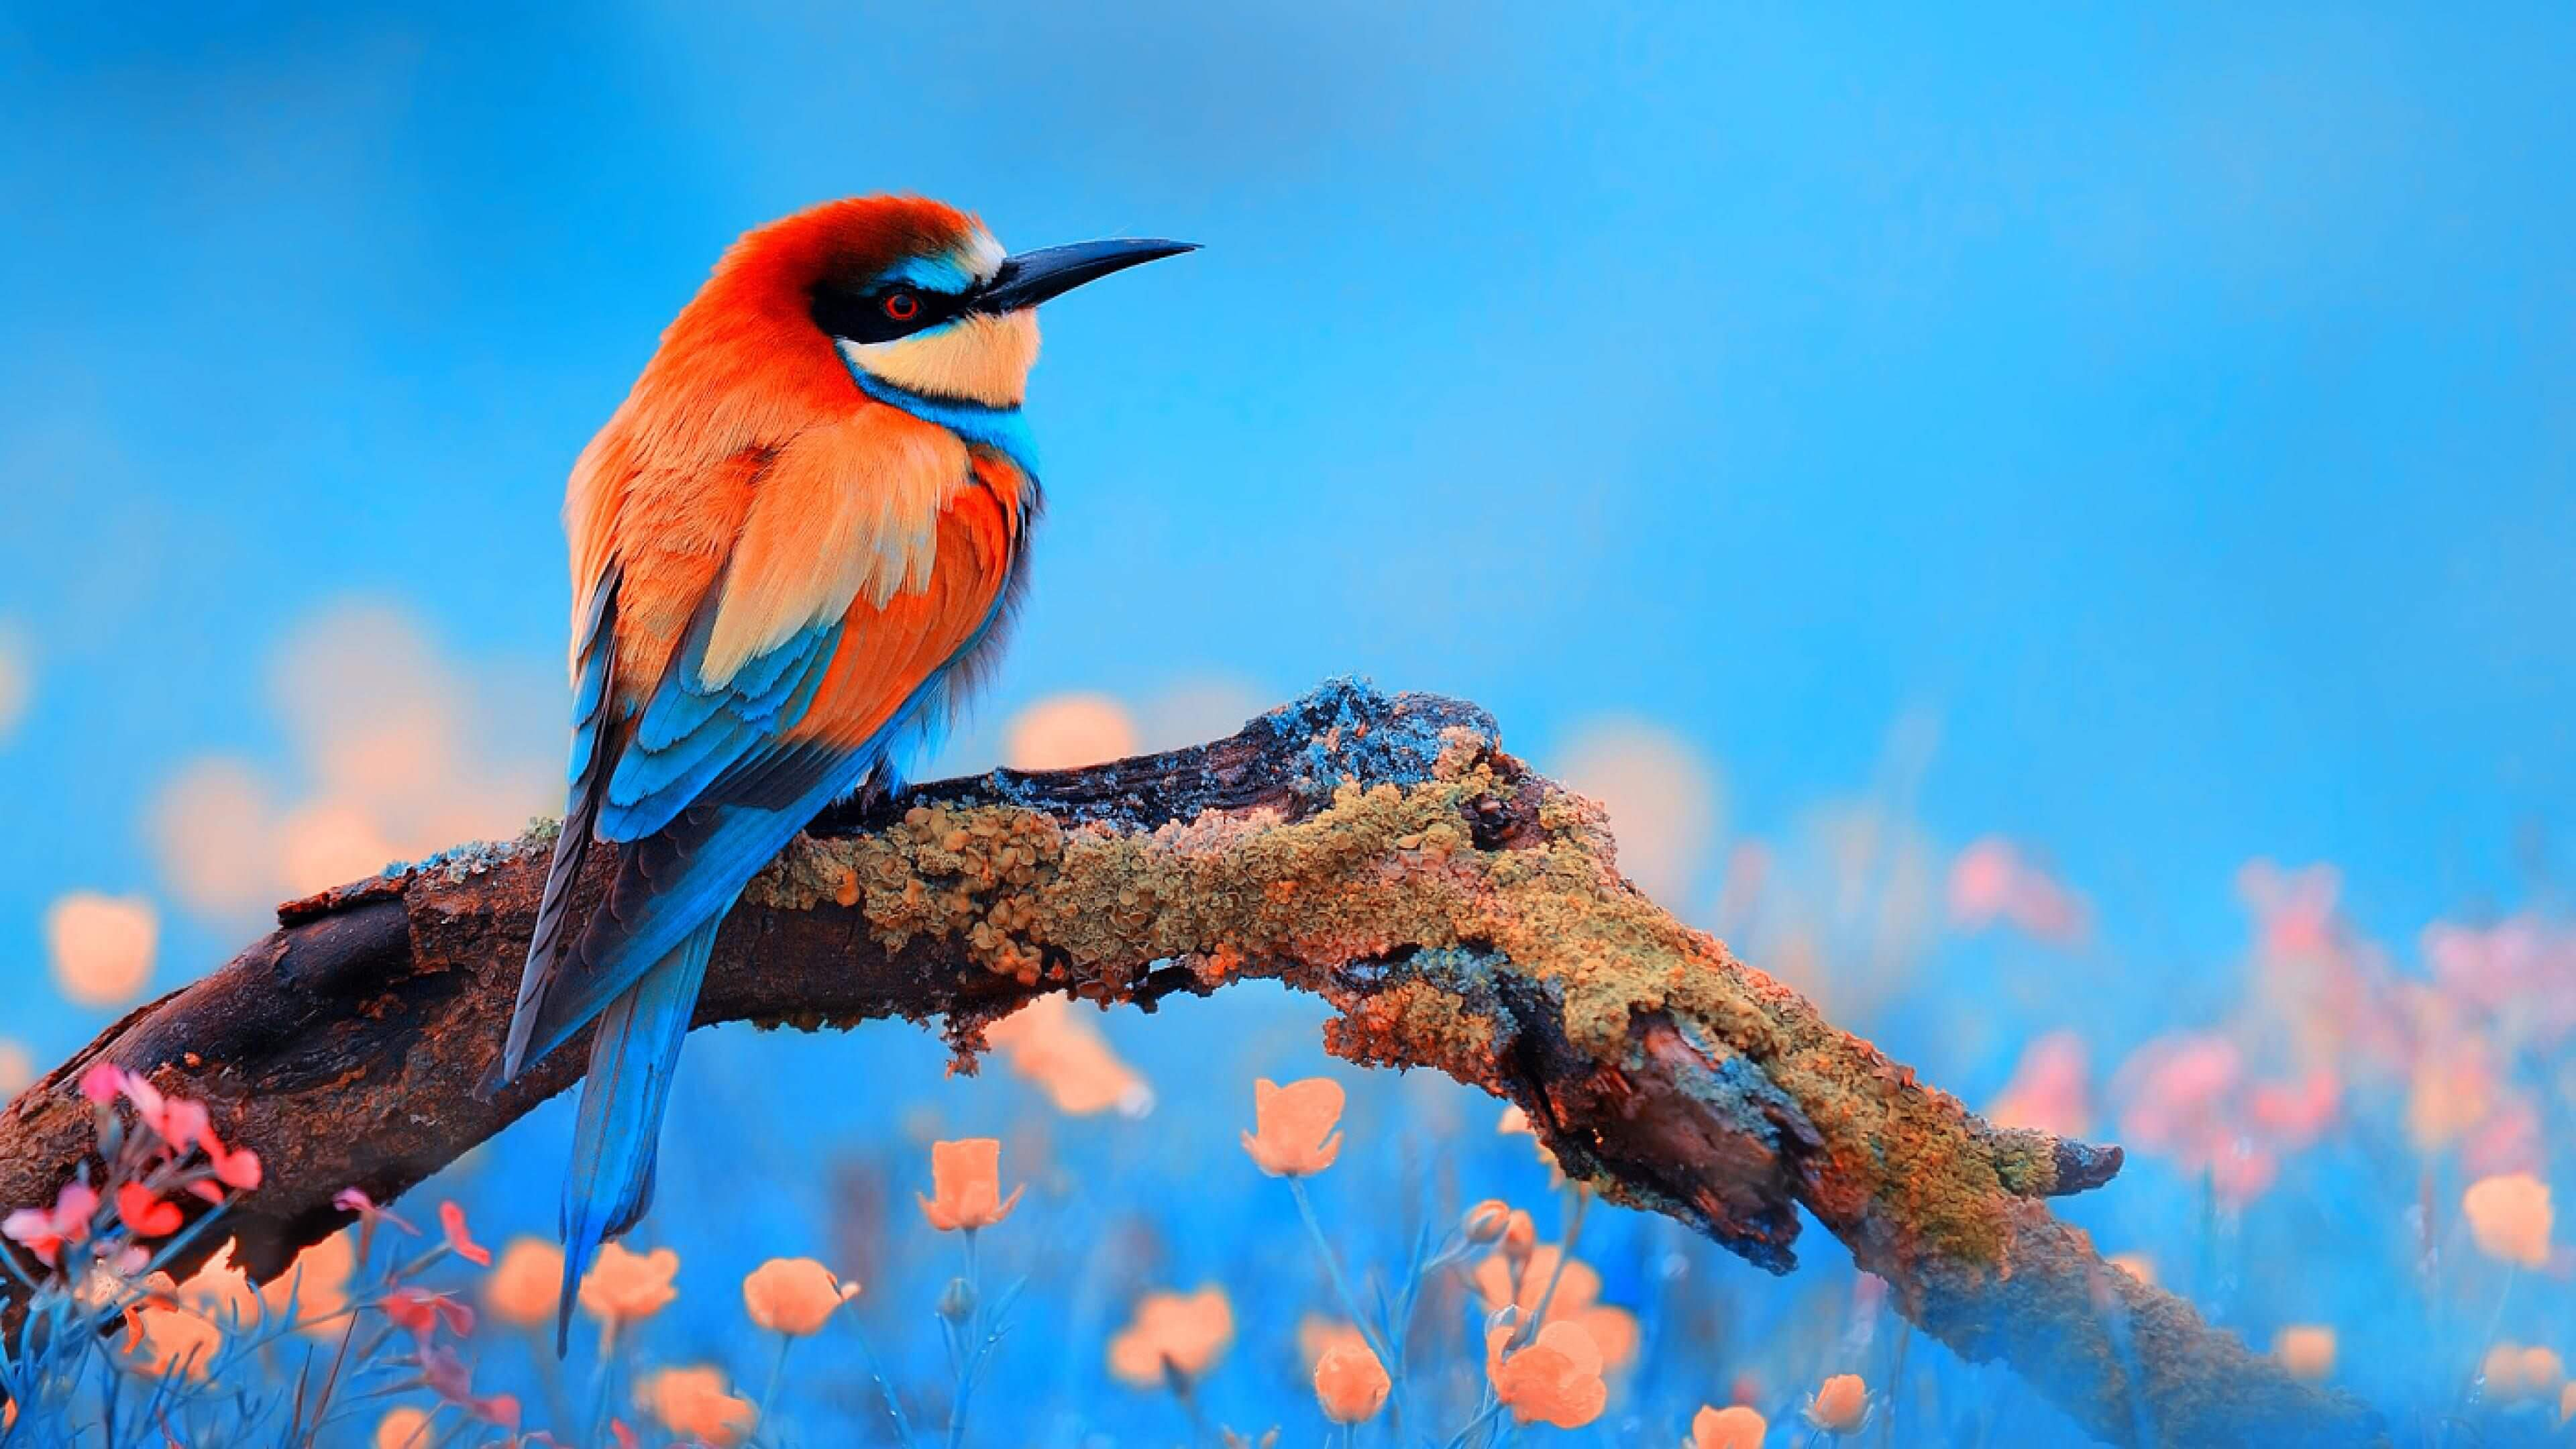 Colorful 4k Birds HD wallpapers for pc